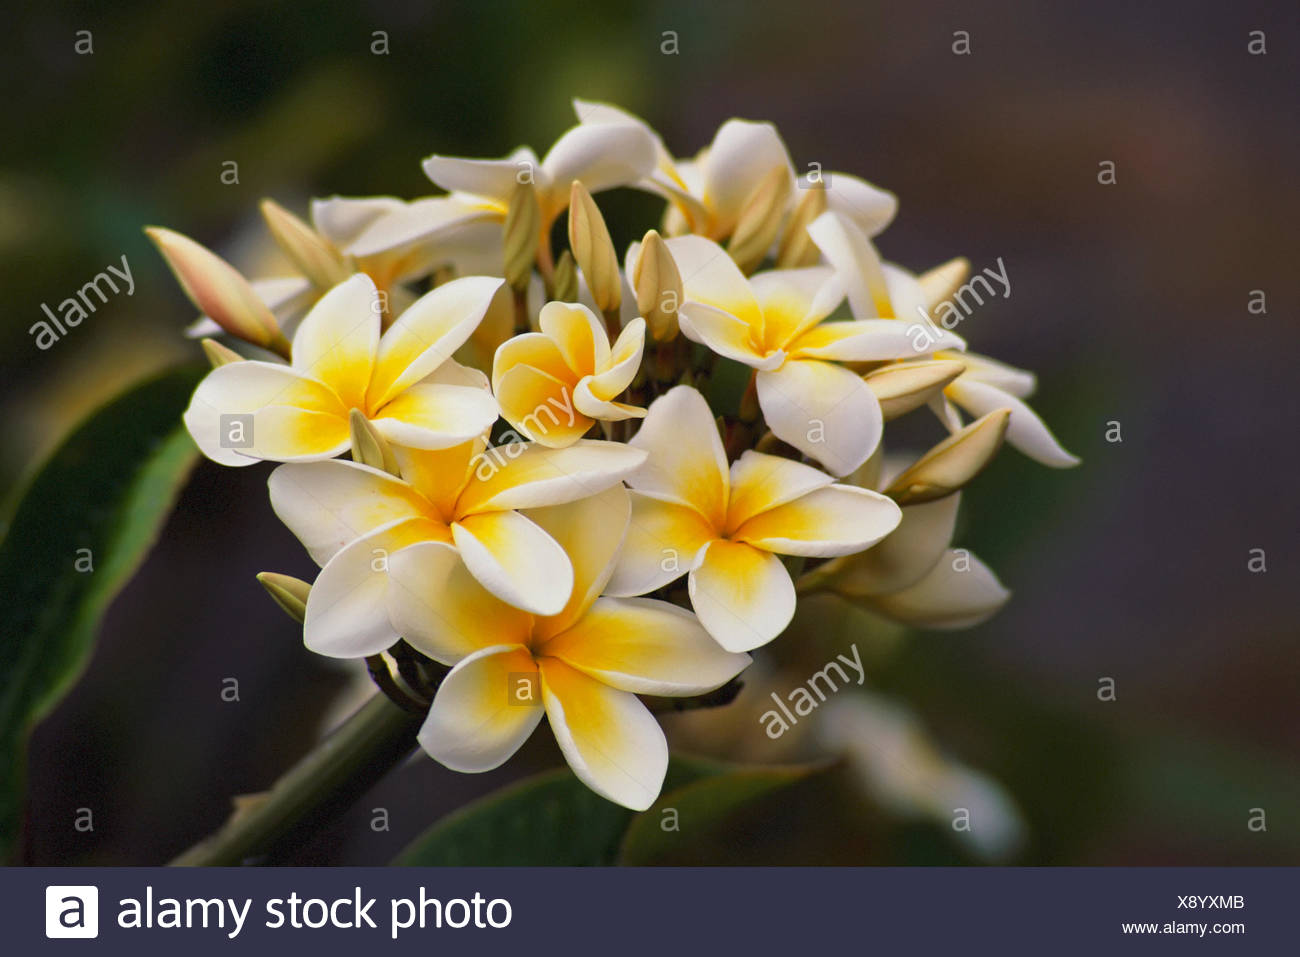 Hawaii Cluster Of White Plumeria Frangipani Flowers On Tree Stock